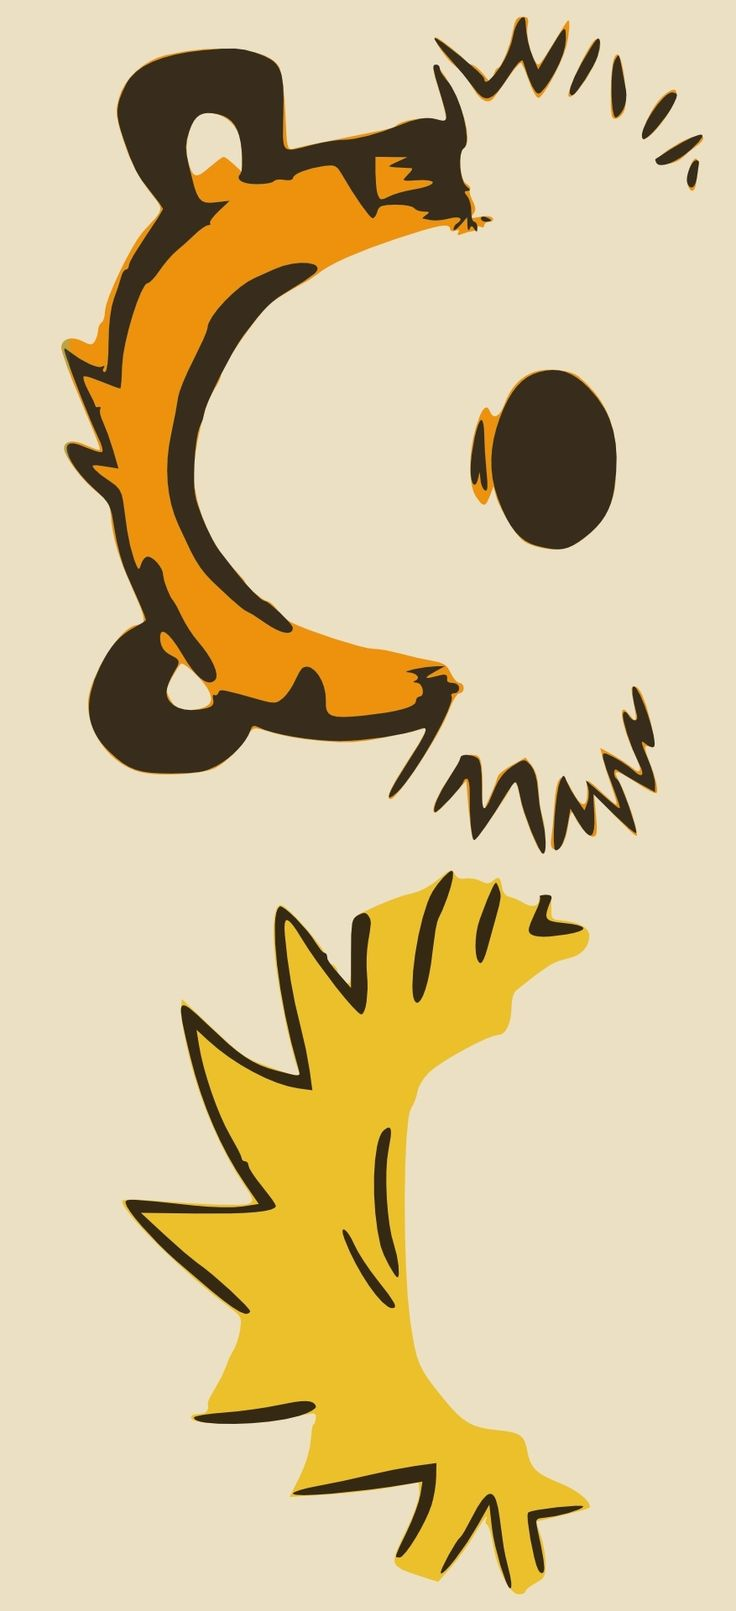 17 Best ideas about Calvin And Hobbes Wallpaper on Pinterest ...